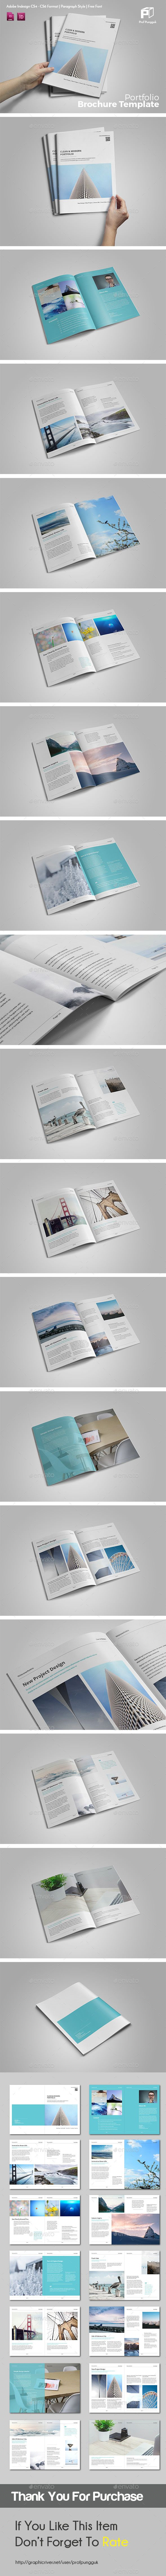 Simple Multipurpose Portfolio Vol.3 — InDesign INDD #template brochure #letter • Available here → https://graphicriver.net/item/simple-multipurpose-portfolio-vol3/15683452?ref=pxcr